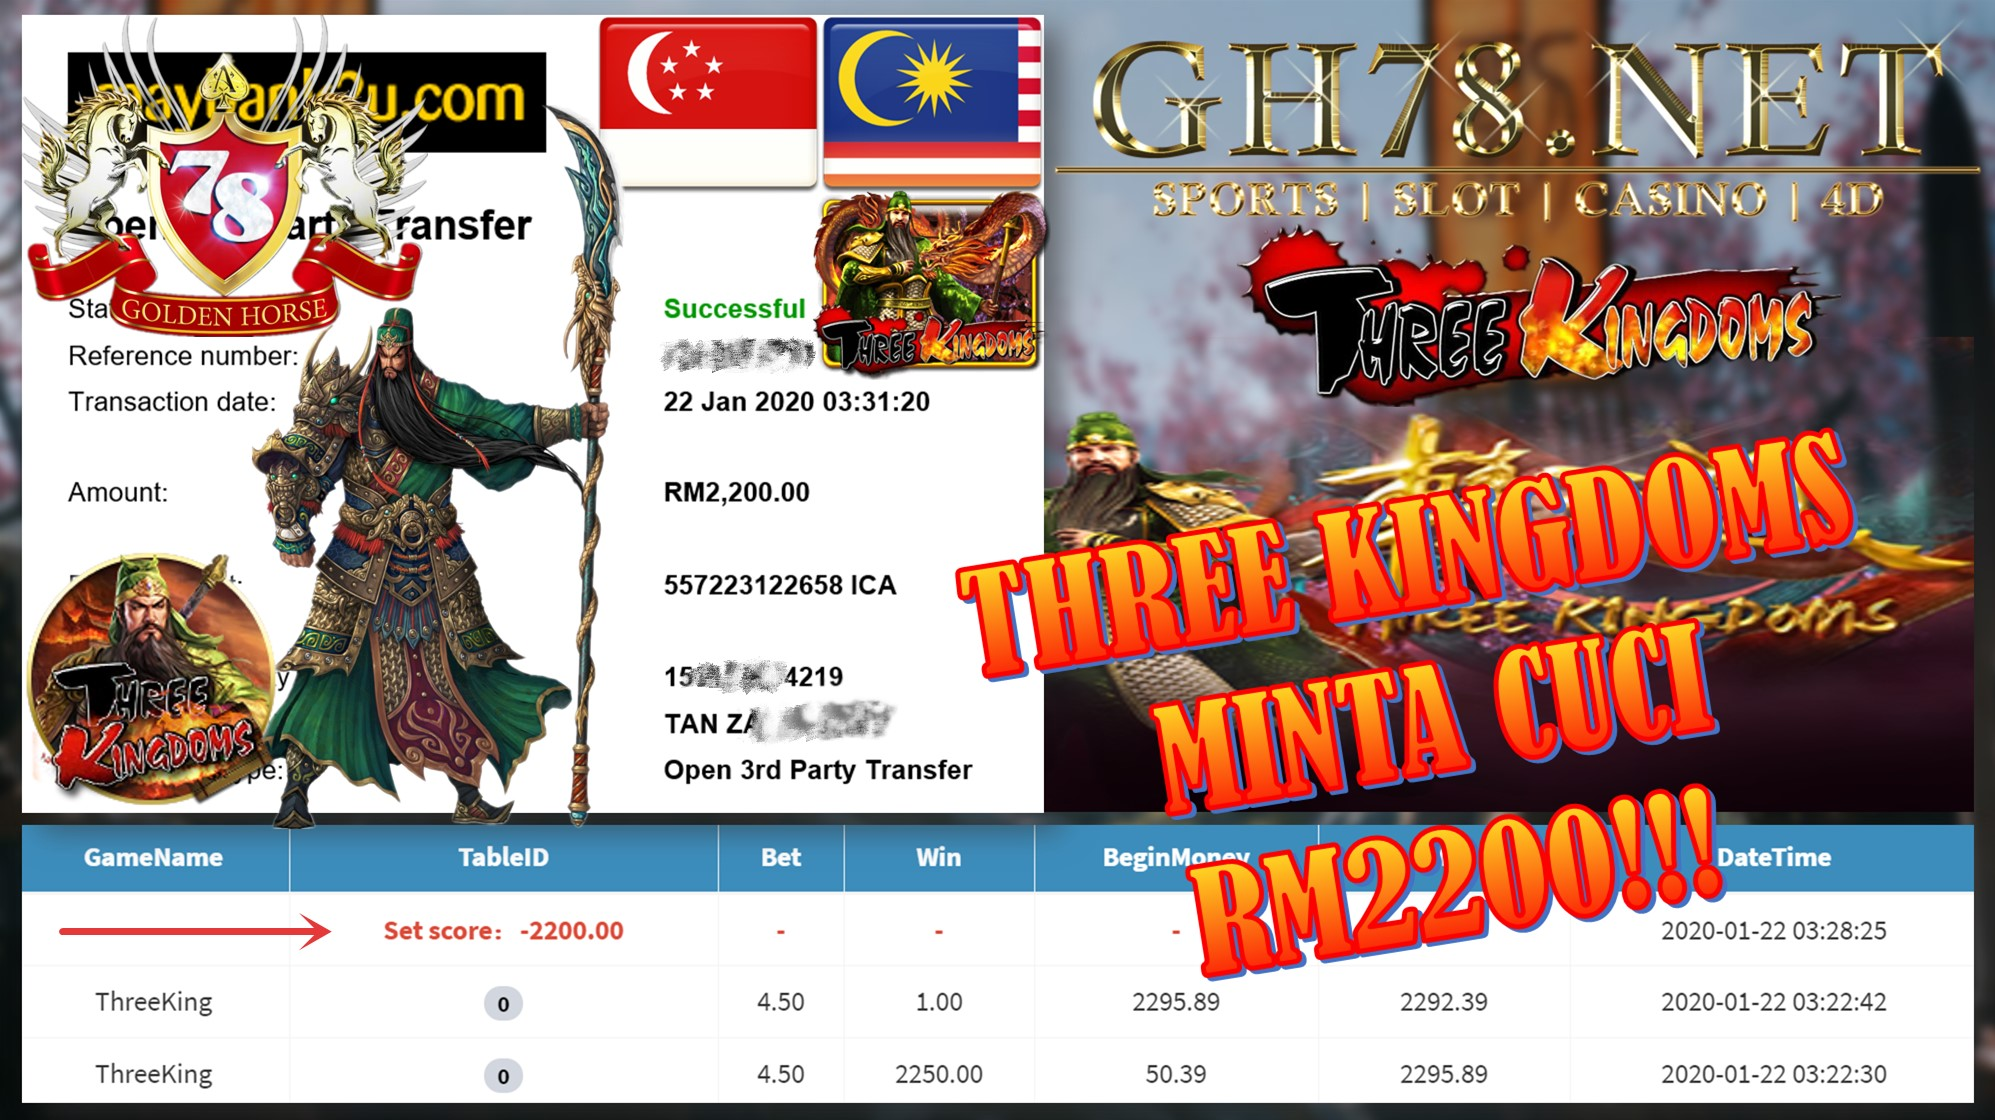 2020 NEW YEAR !!! MEMBER MAIN MEGA888, THREE KINGDOM ,WITHDRAW RM2200 !!!